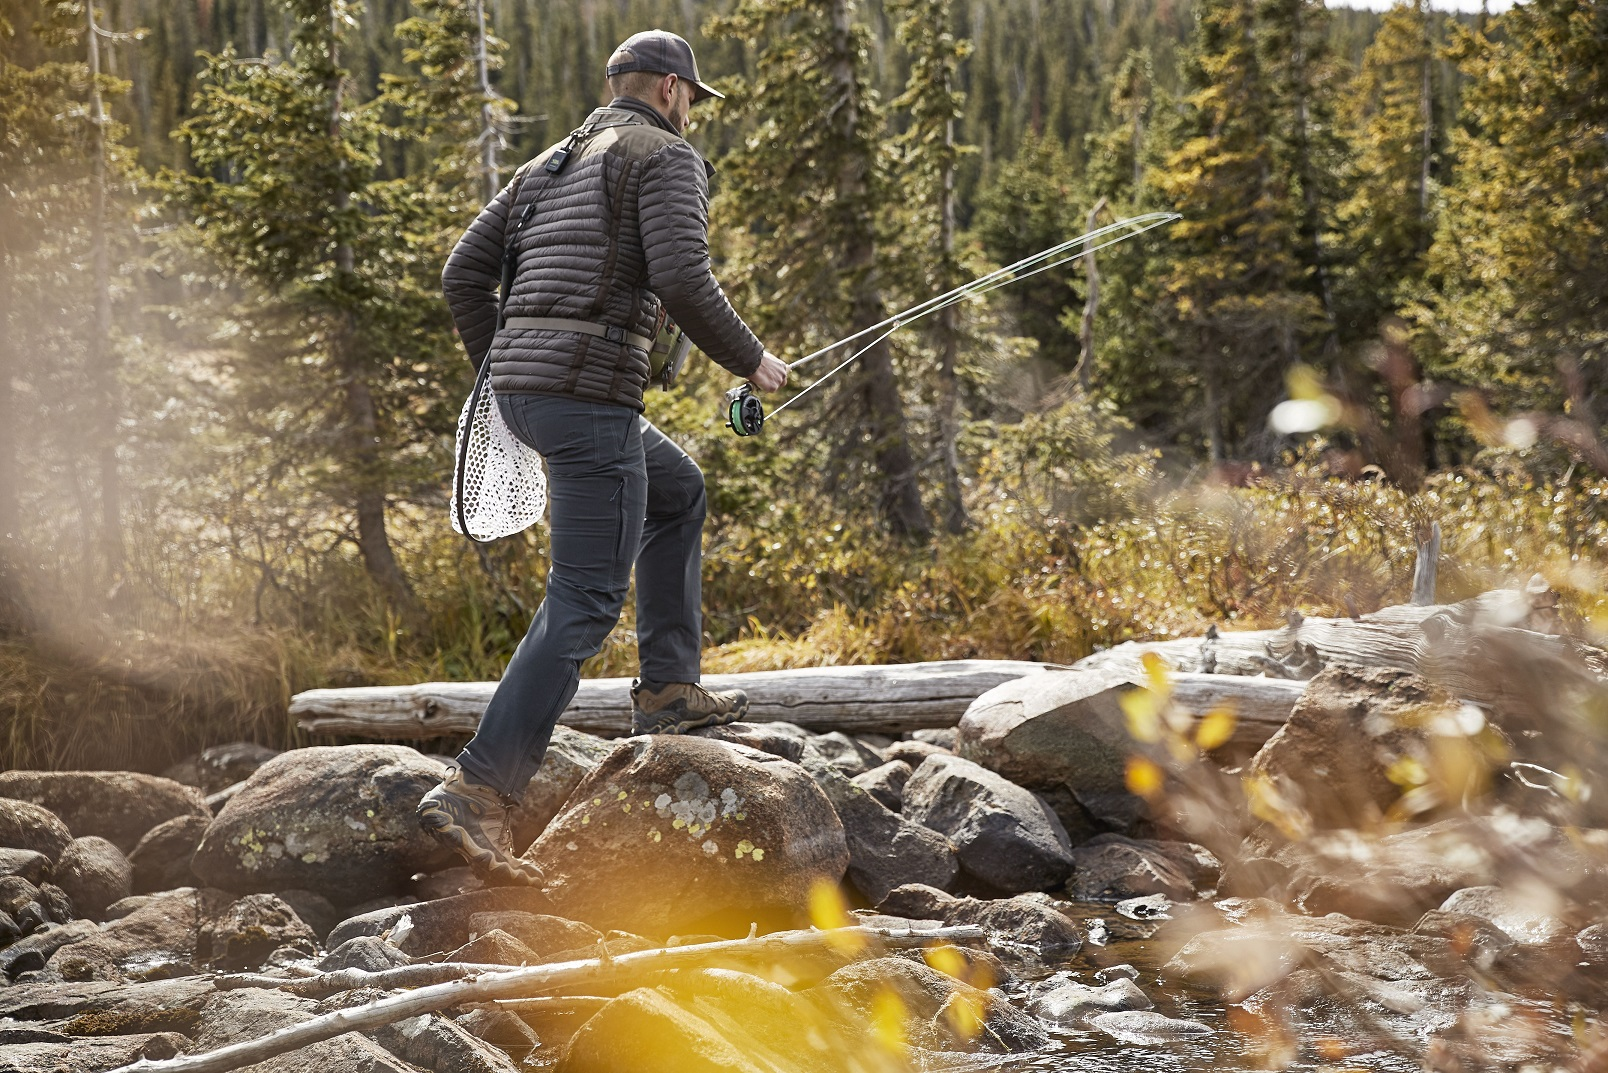 Gearing Up the Flyfishing Greenhorn FI with KUHL mens fishing clothing.